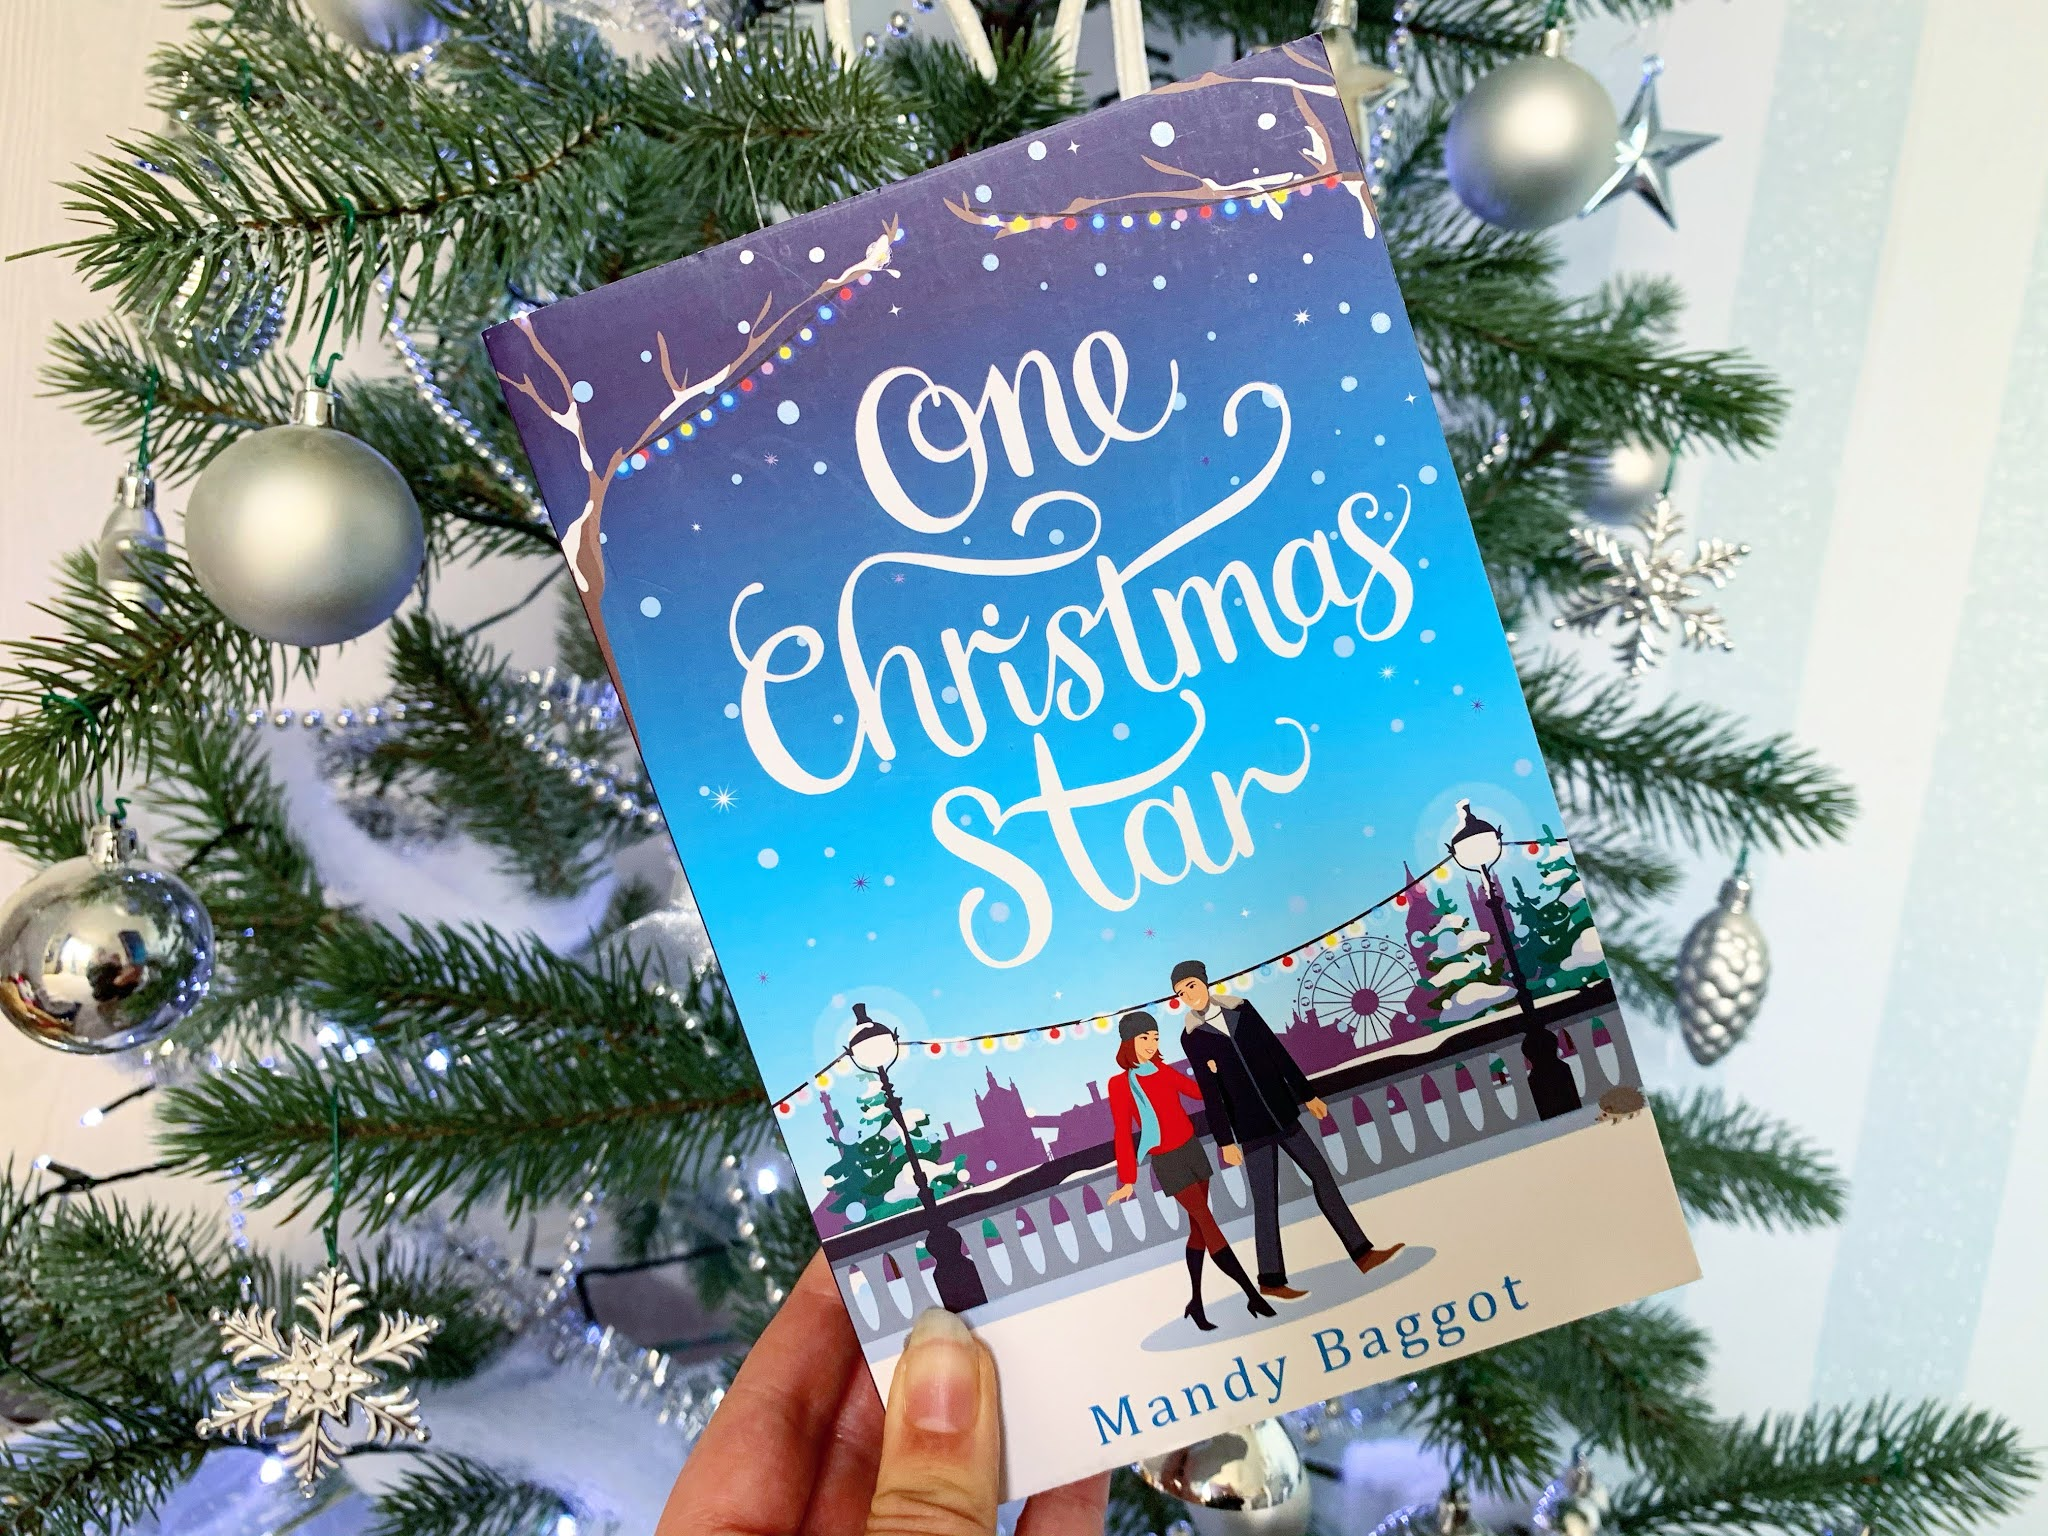 One Christmas Star by Mandy Baggot book under the Christmas tree